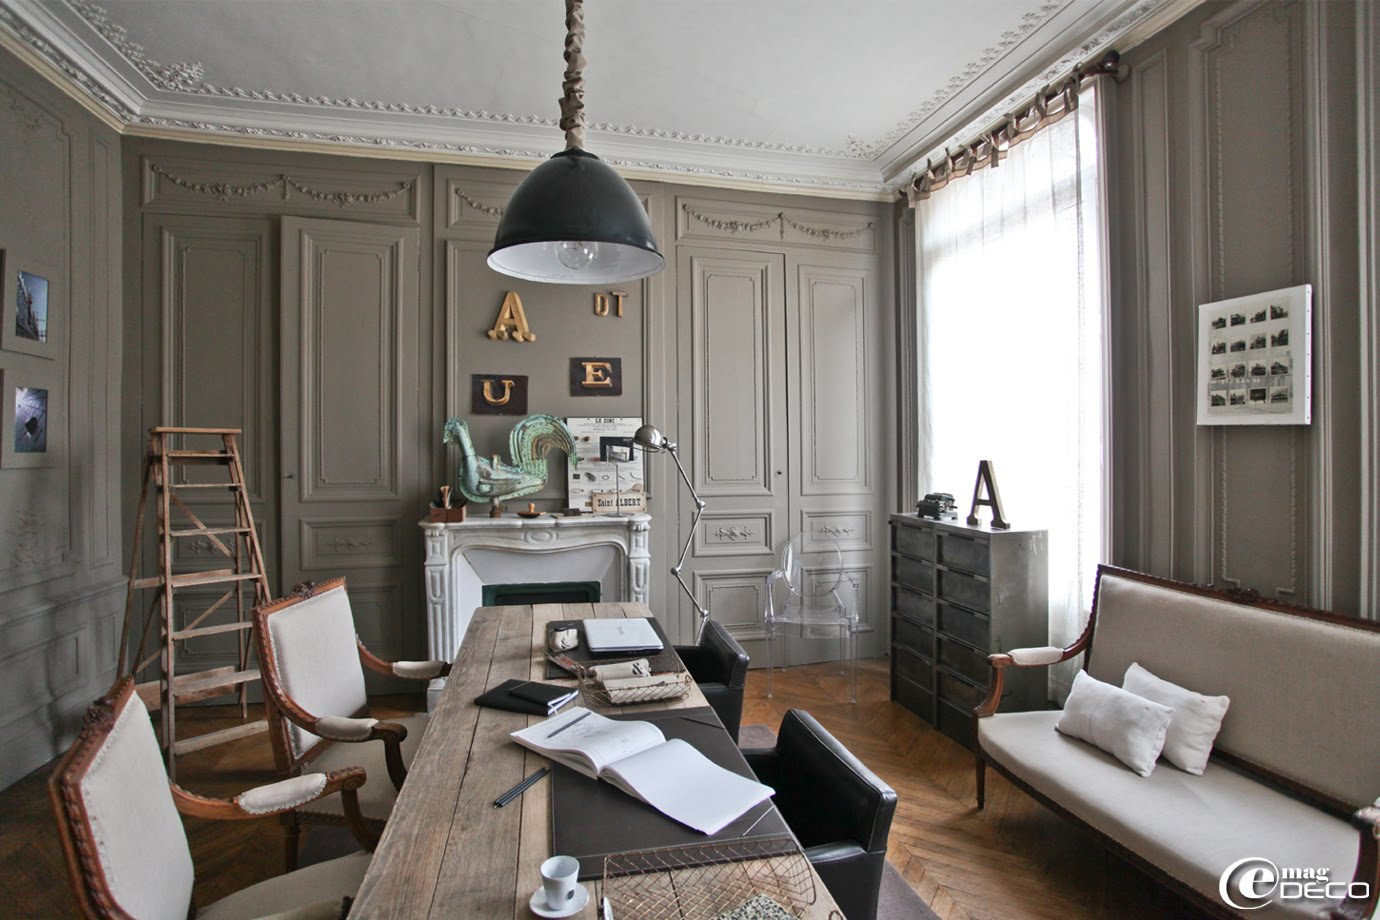 d coration interieur maison bourgeoise. Black Bedroom Furniture Sets. Home Design Ideas